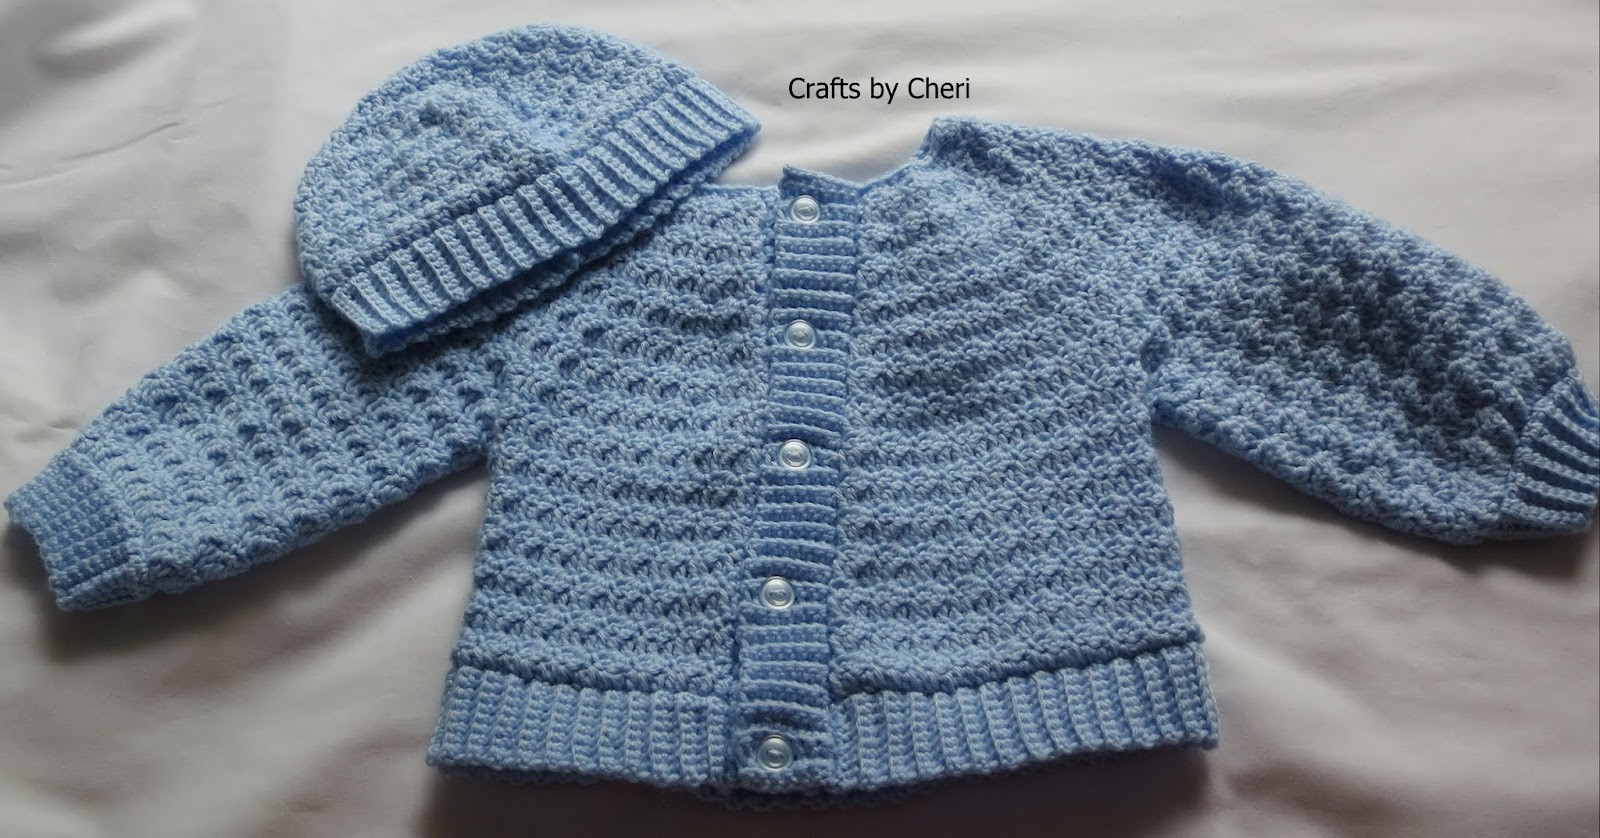 Crochet Baby Cardigan Pattern Elegant My Crochet Part 184 Of Luxury 44 Pictures Crochet Baby Cardigan Pattern